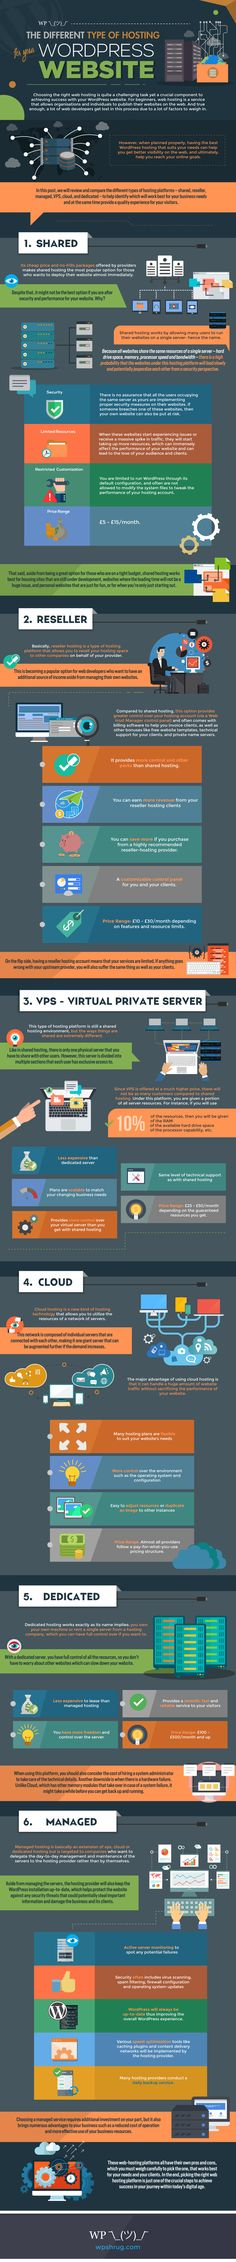 The Different Types of Hosting for Your WordPress Website Infographic